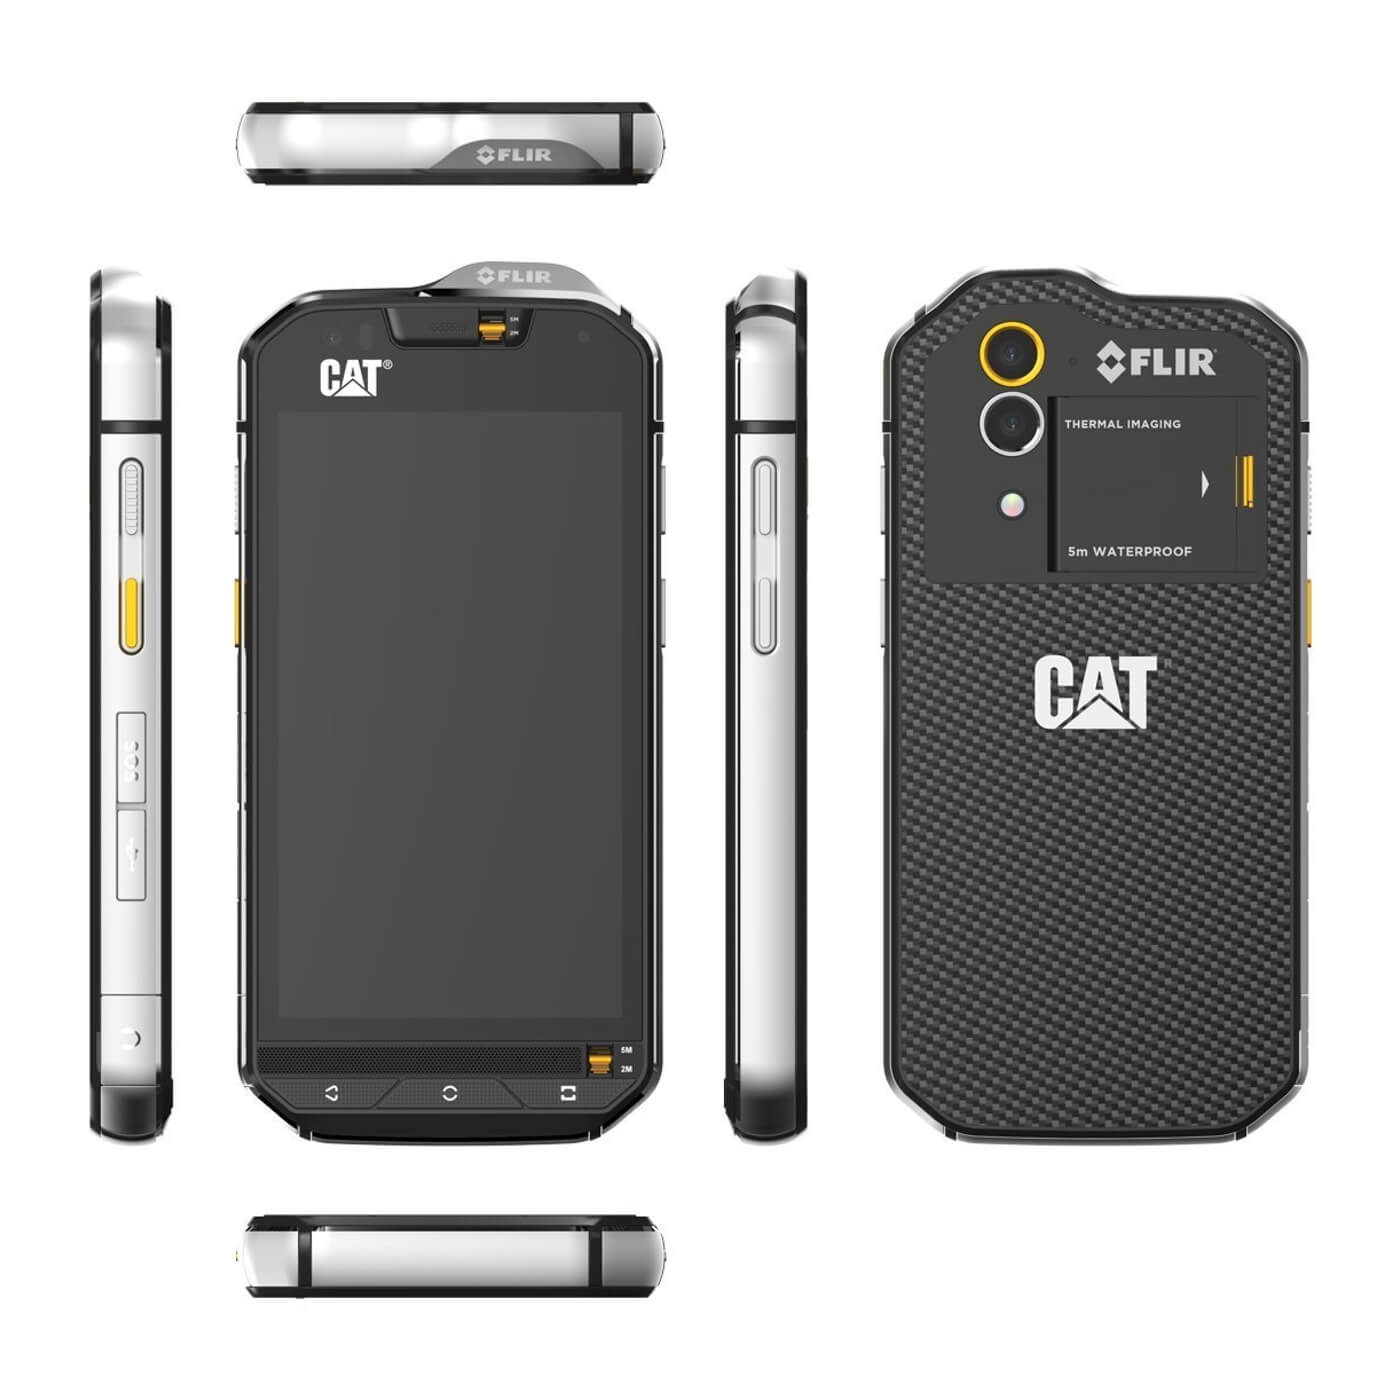 Catapillar Flir Thermal Imager phone